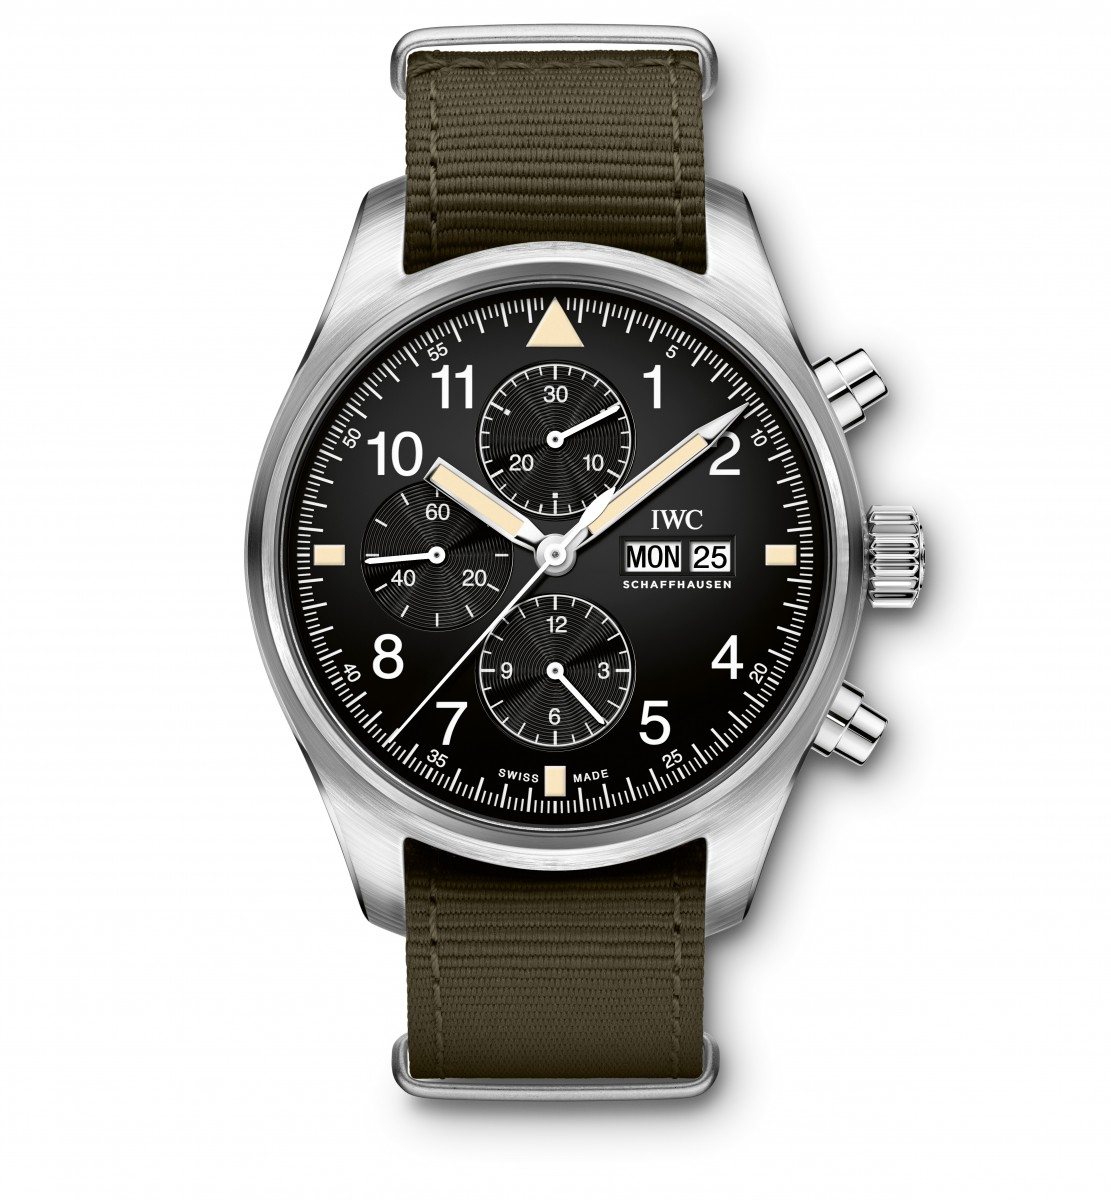 IWC Pilot's Watch Chronograph IW377724. Автоподзавод, сталь, 43 мм, 60 м.